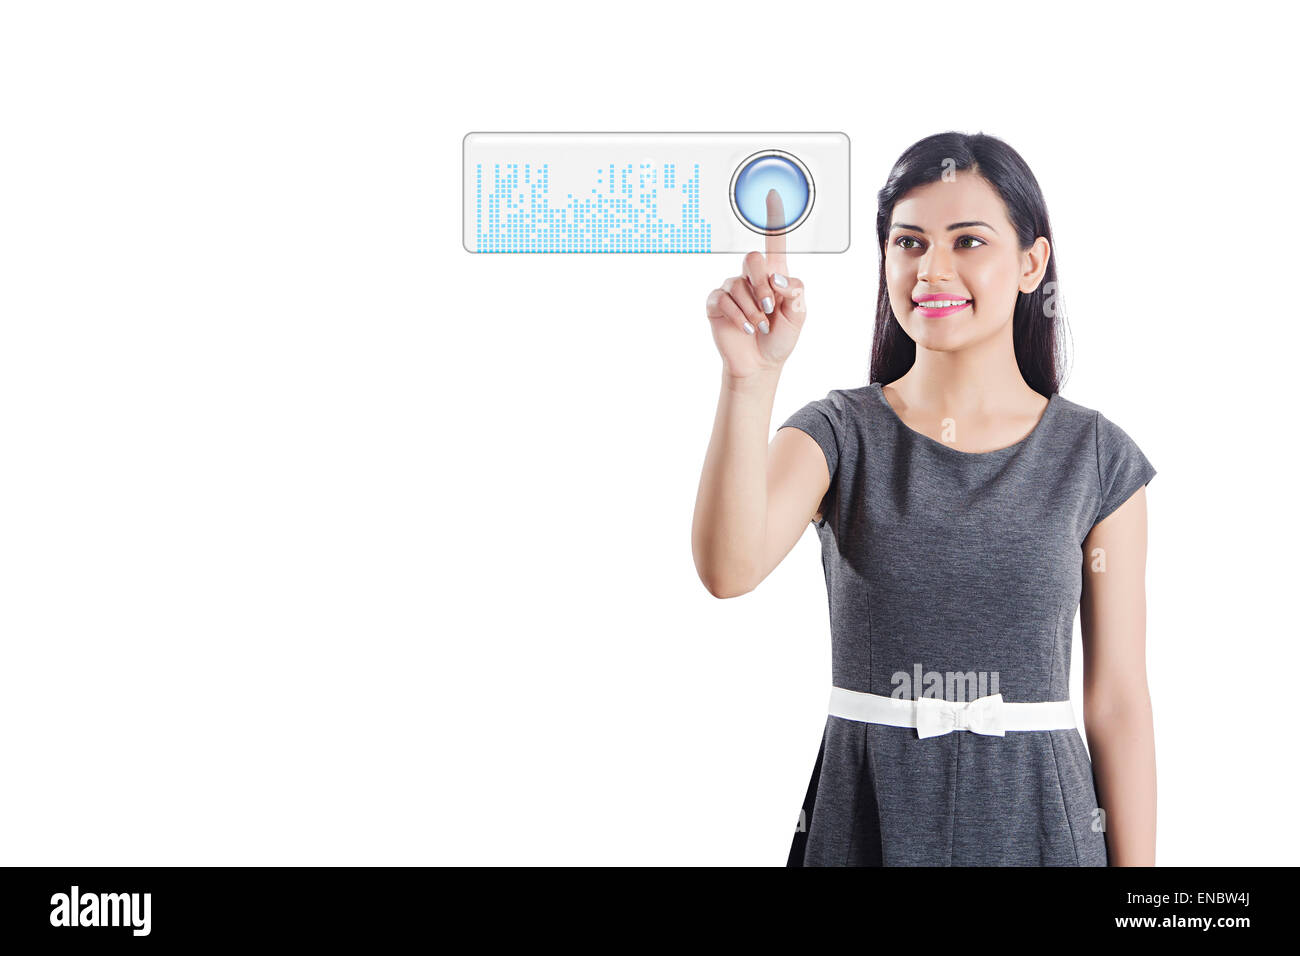 1 indian Business woman Working Software Technology - Stock Image